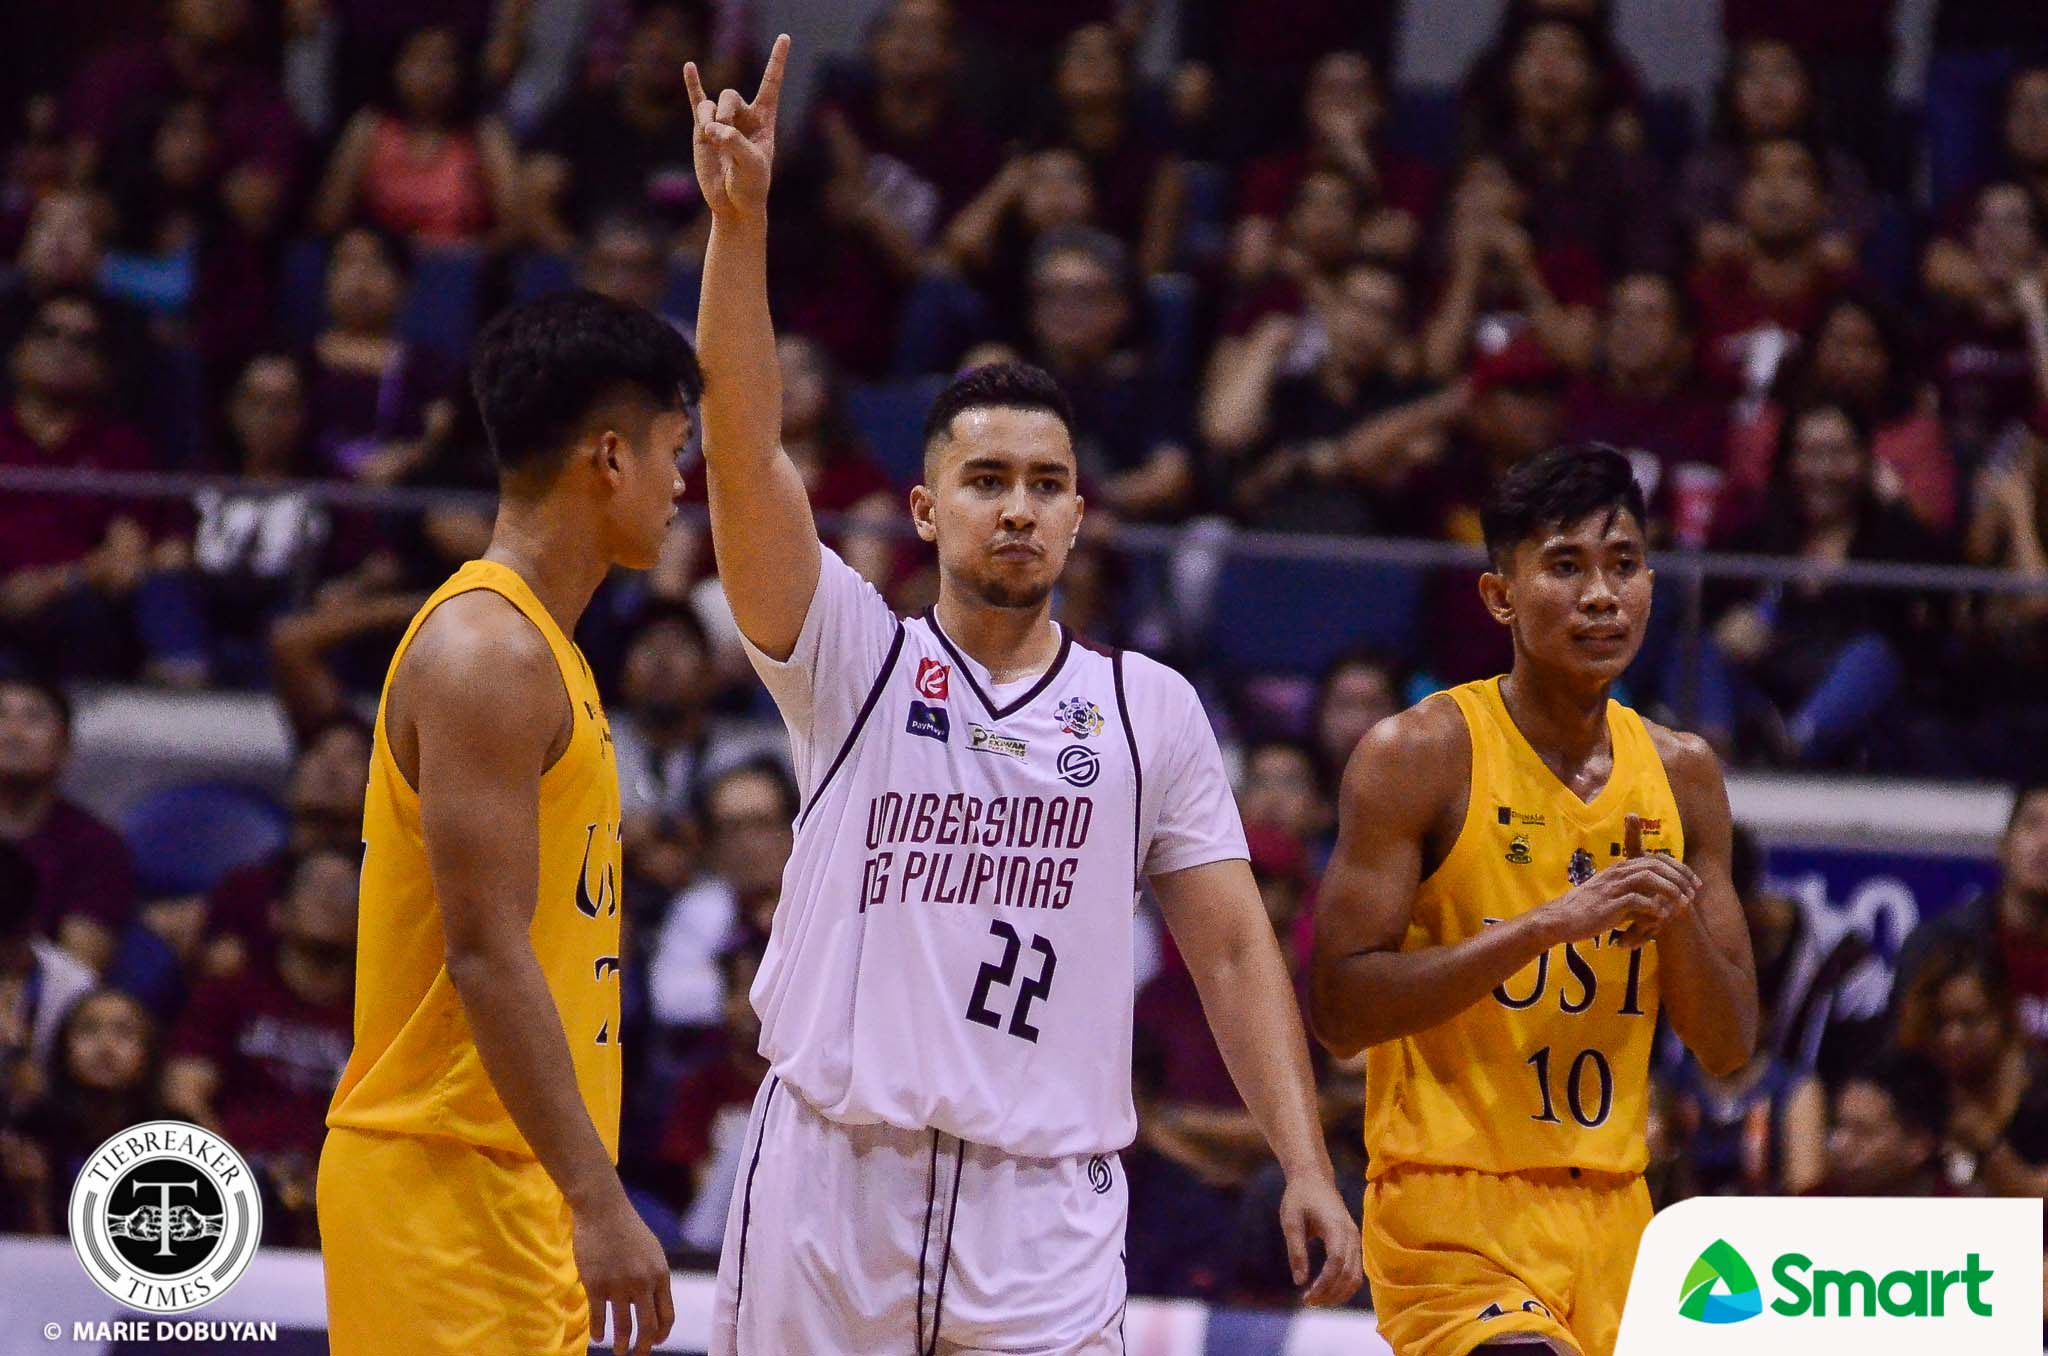 UAAP82-Mens-Basketball-UP-vs-UST-Javi-GDL-3365 Javi GDL makes tough decision to forgo final year in UP Basketball News UAAP UP  - philippine sports news